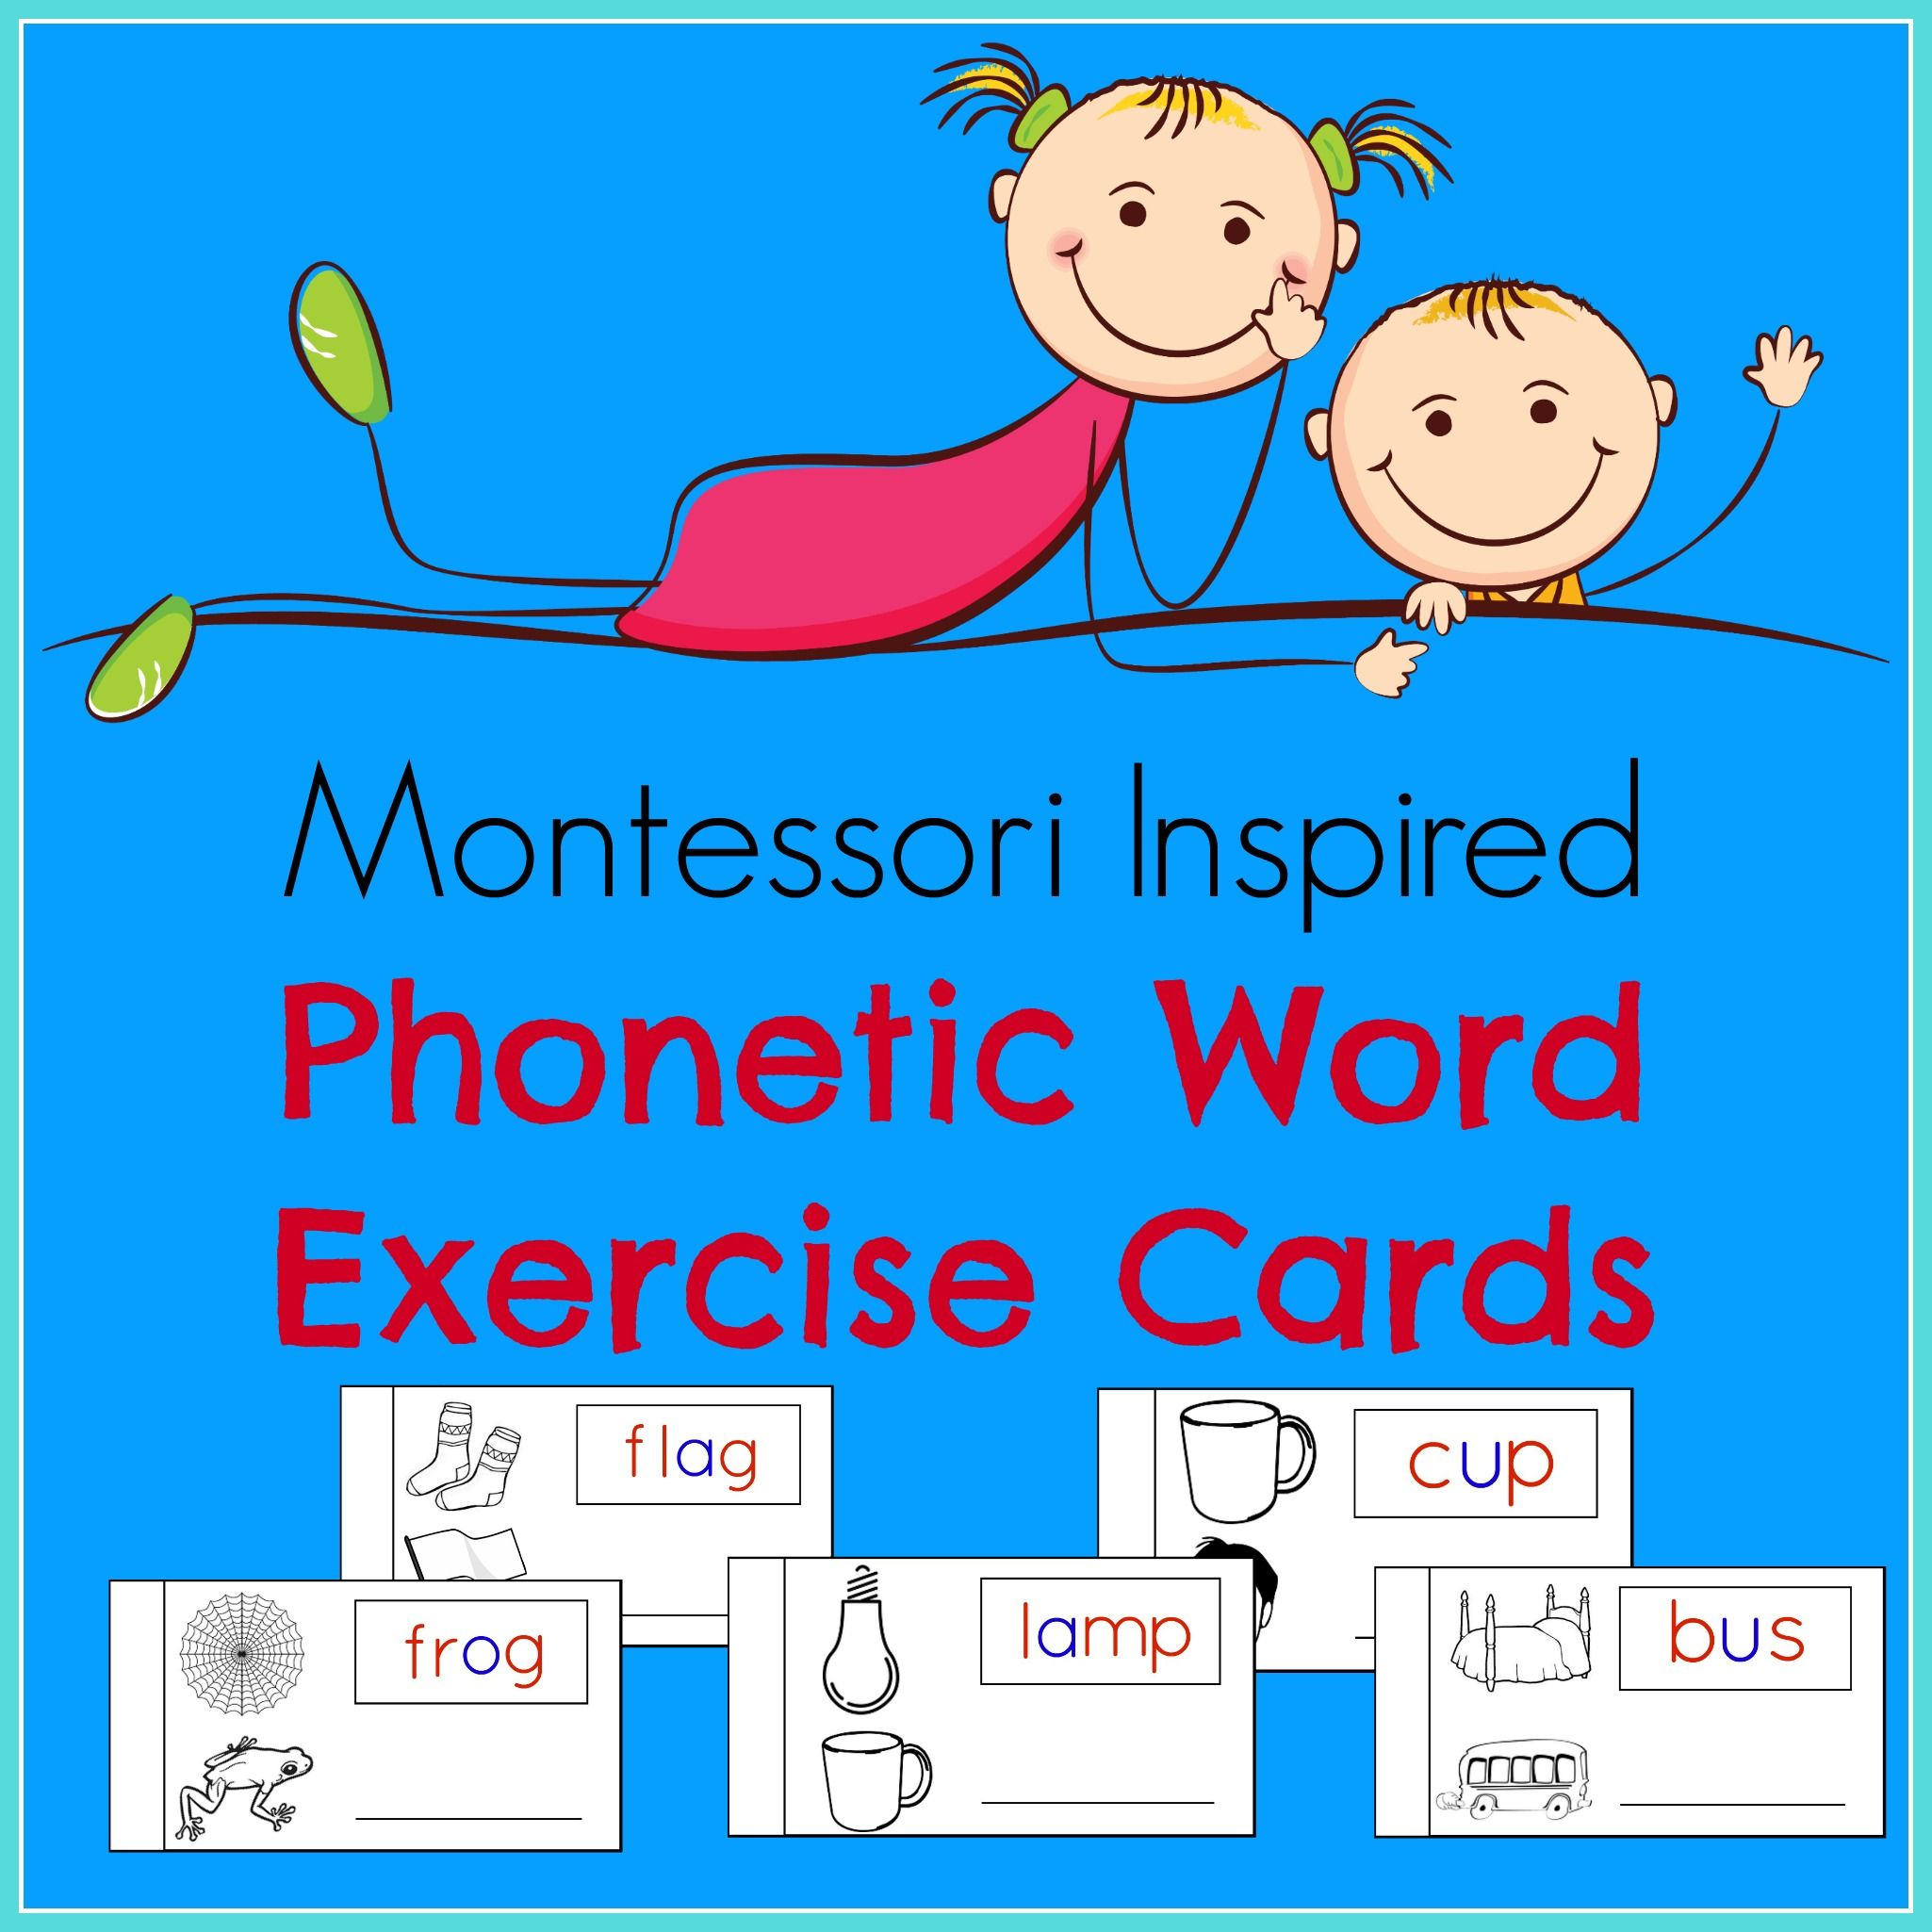 Phonetic Word Exercise Cards Contain 54 Phonetic Word Cards With 3 Letter Phonetic Words A E I